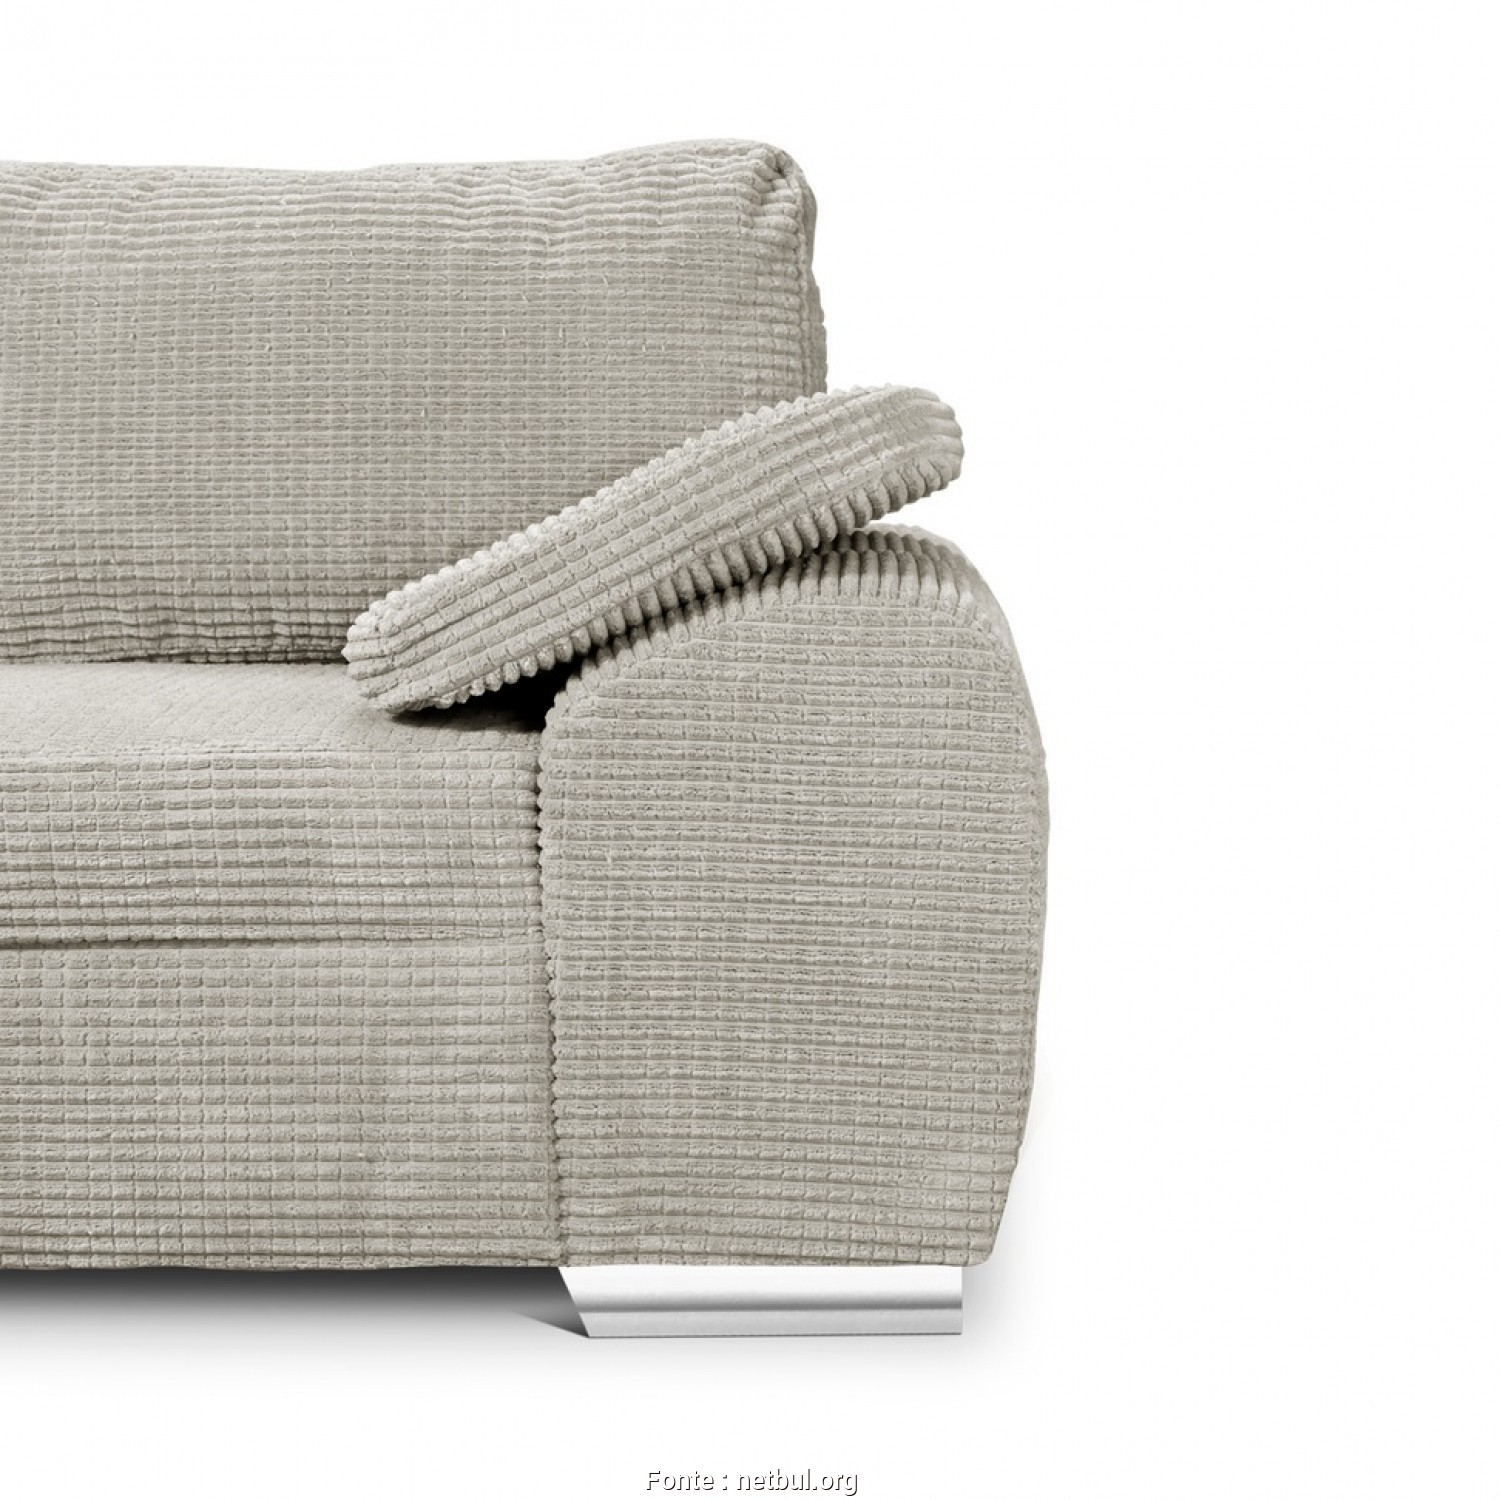 Ikea Backabro Review, Ideale ... Bedroom Large-Size Enzo Corner Sofa 3 Seater Pull, Bed Chaise On Right Or